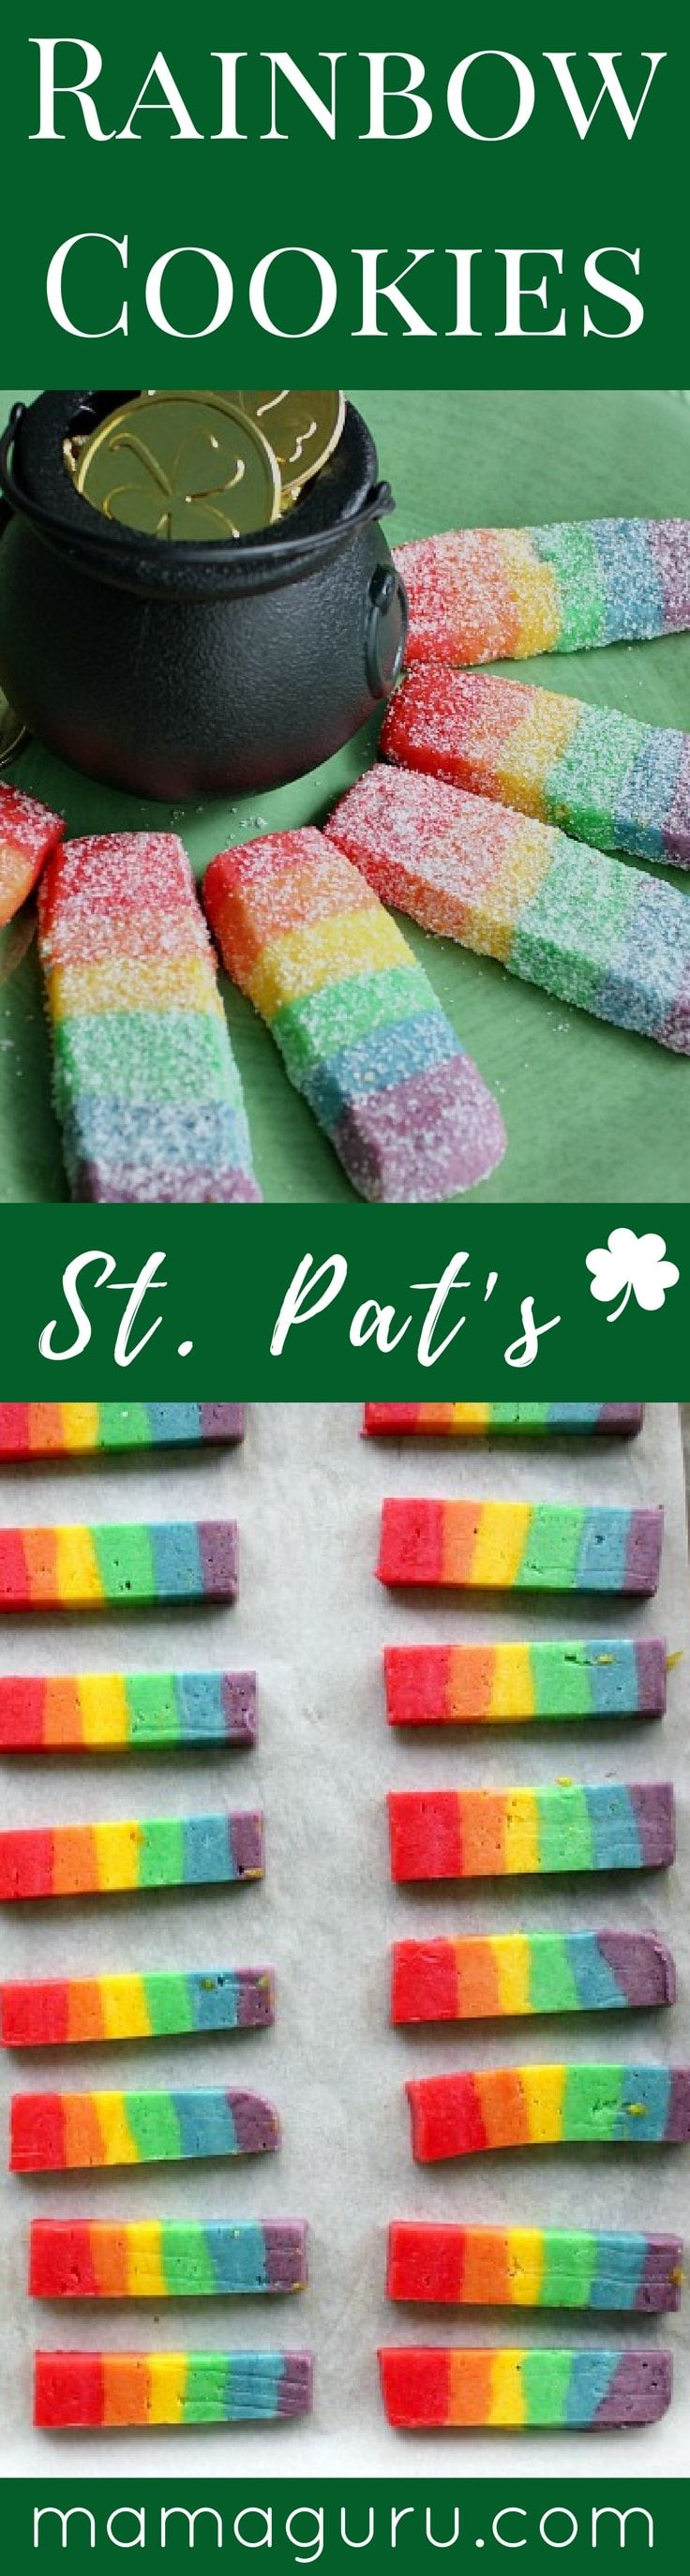 Rainbow Cookies Recipe.  Perfect for St. Patrick's Day